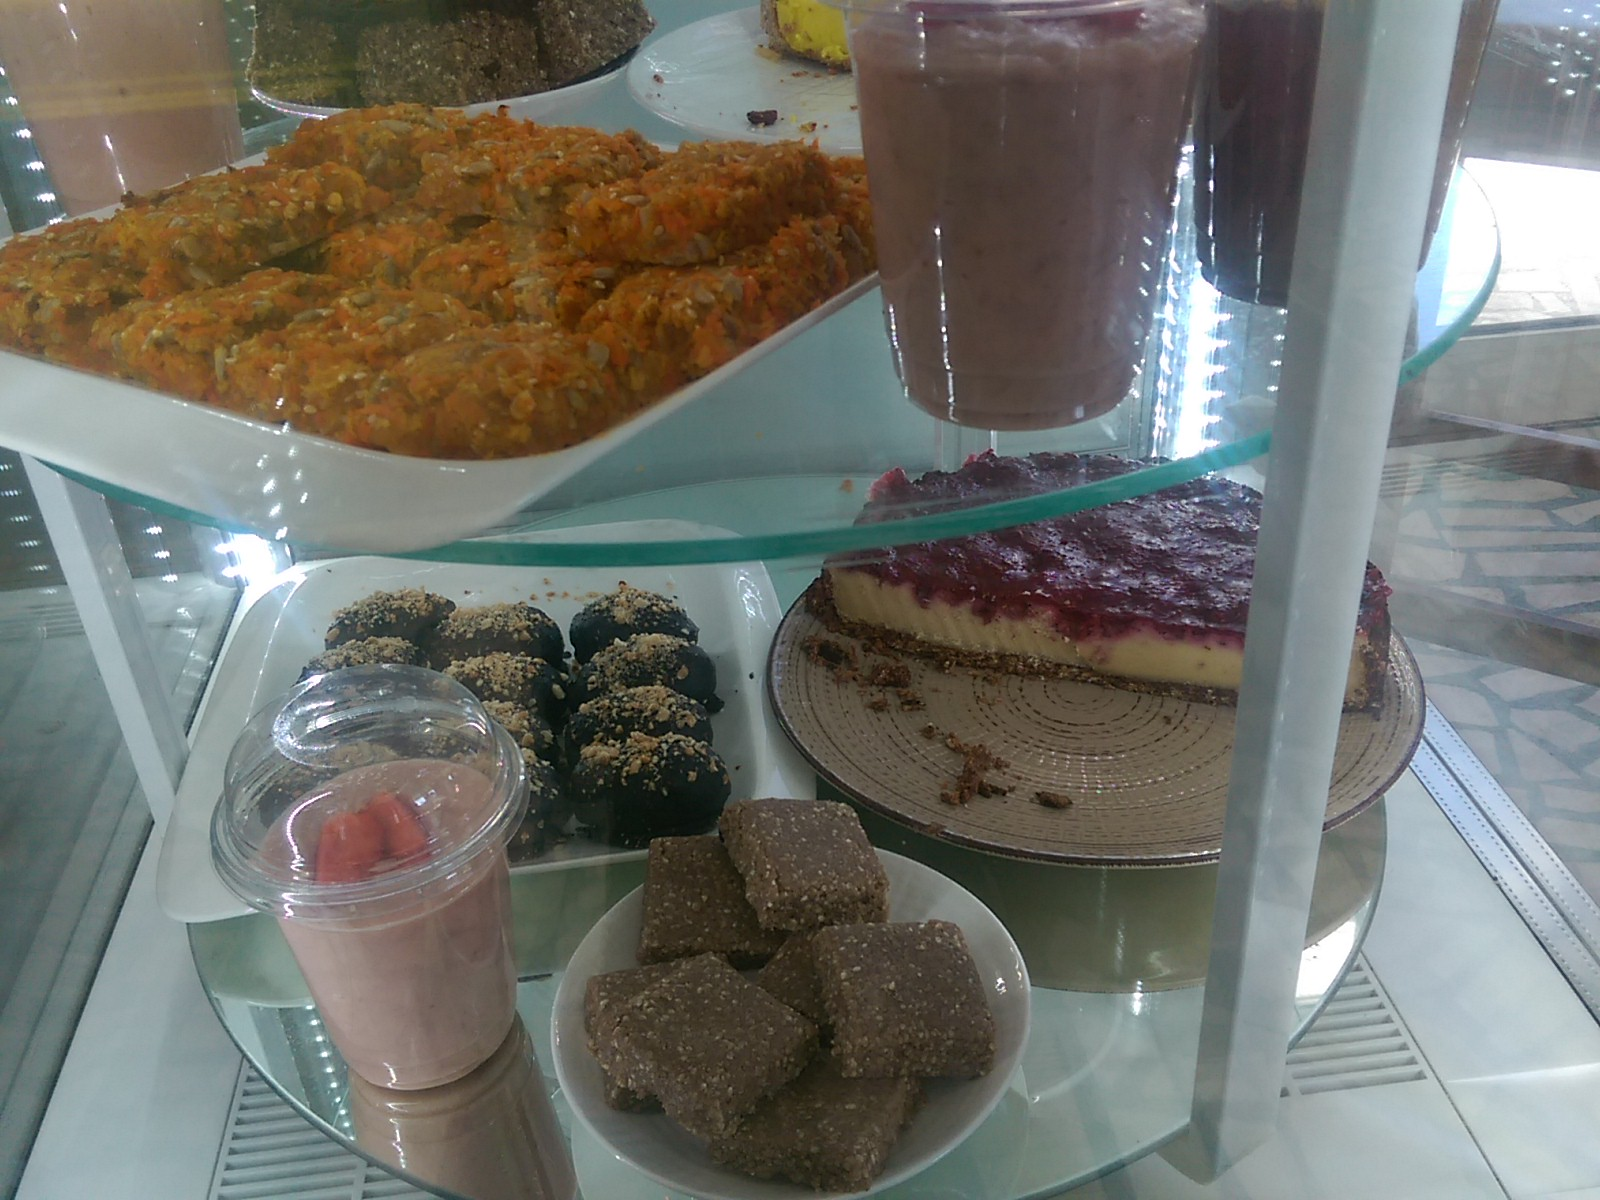 A glass counter with shelves of cakes